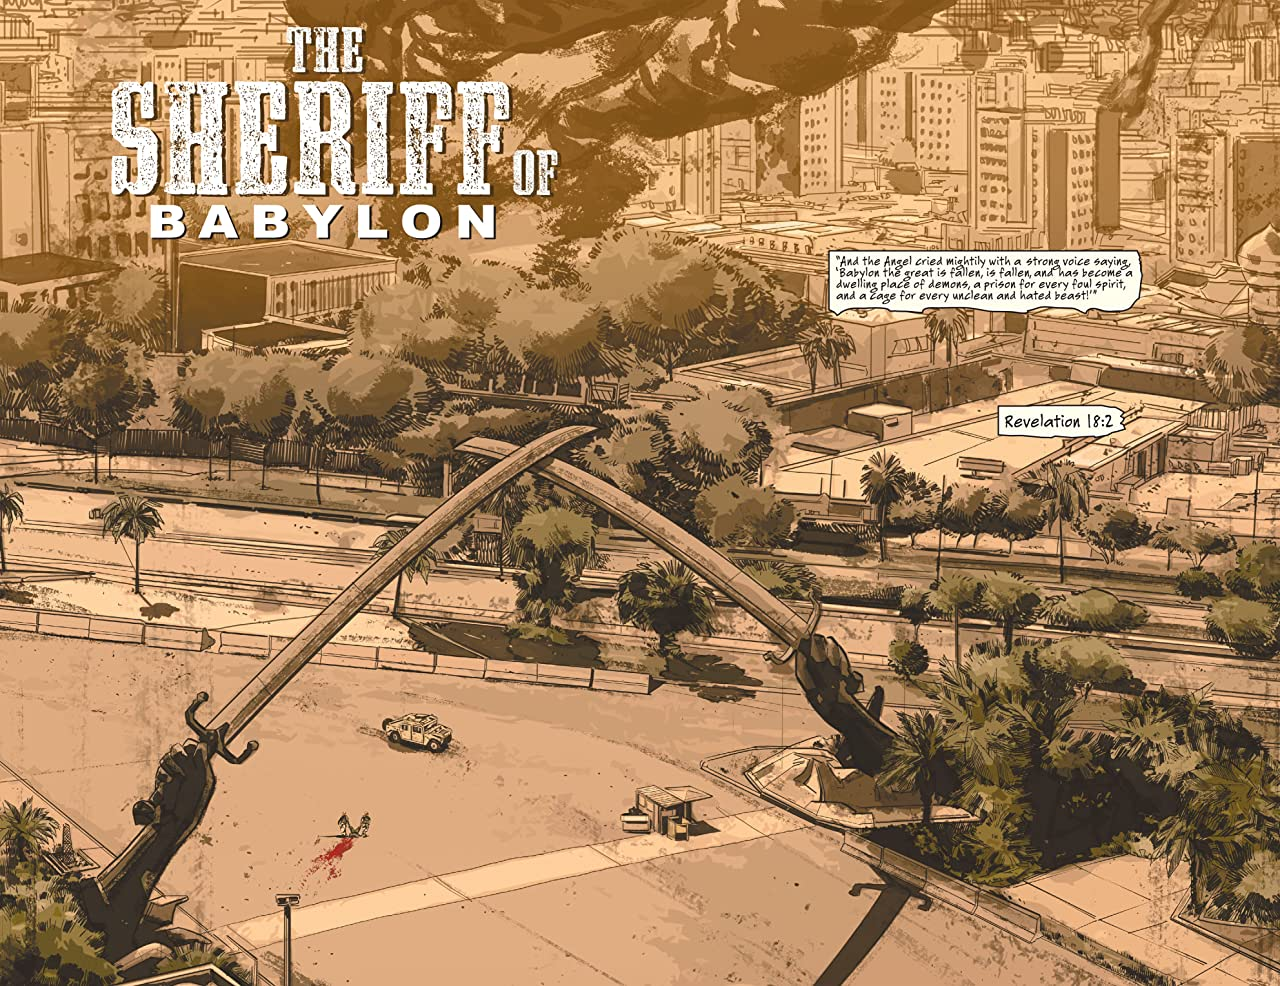 Sheriff of Babylon: The Deluxe Edition